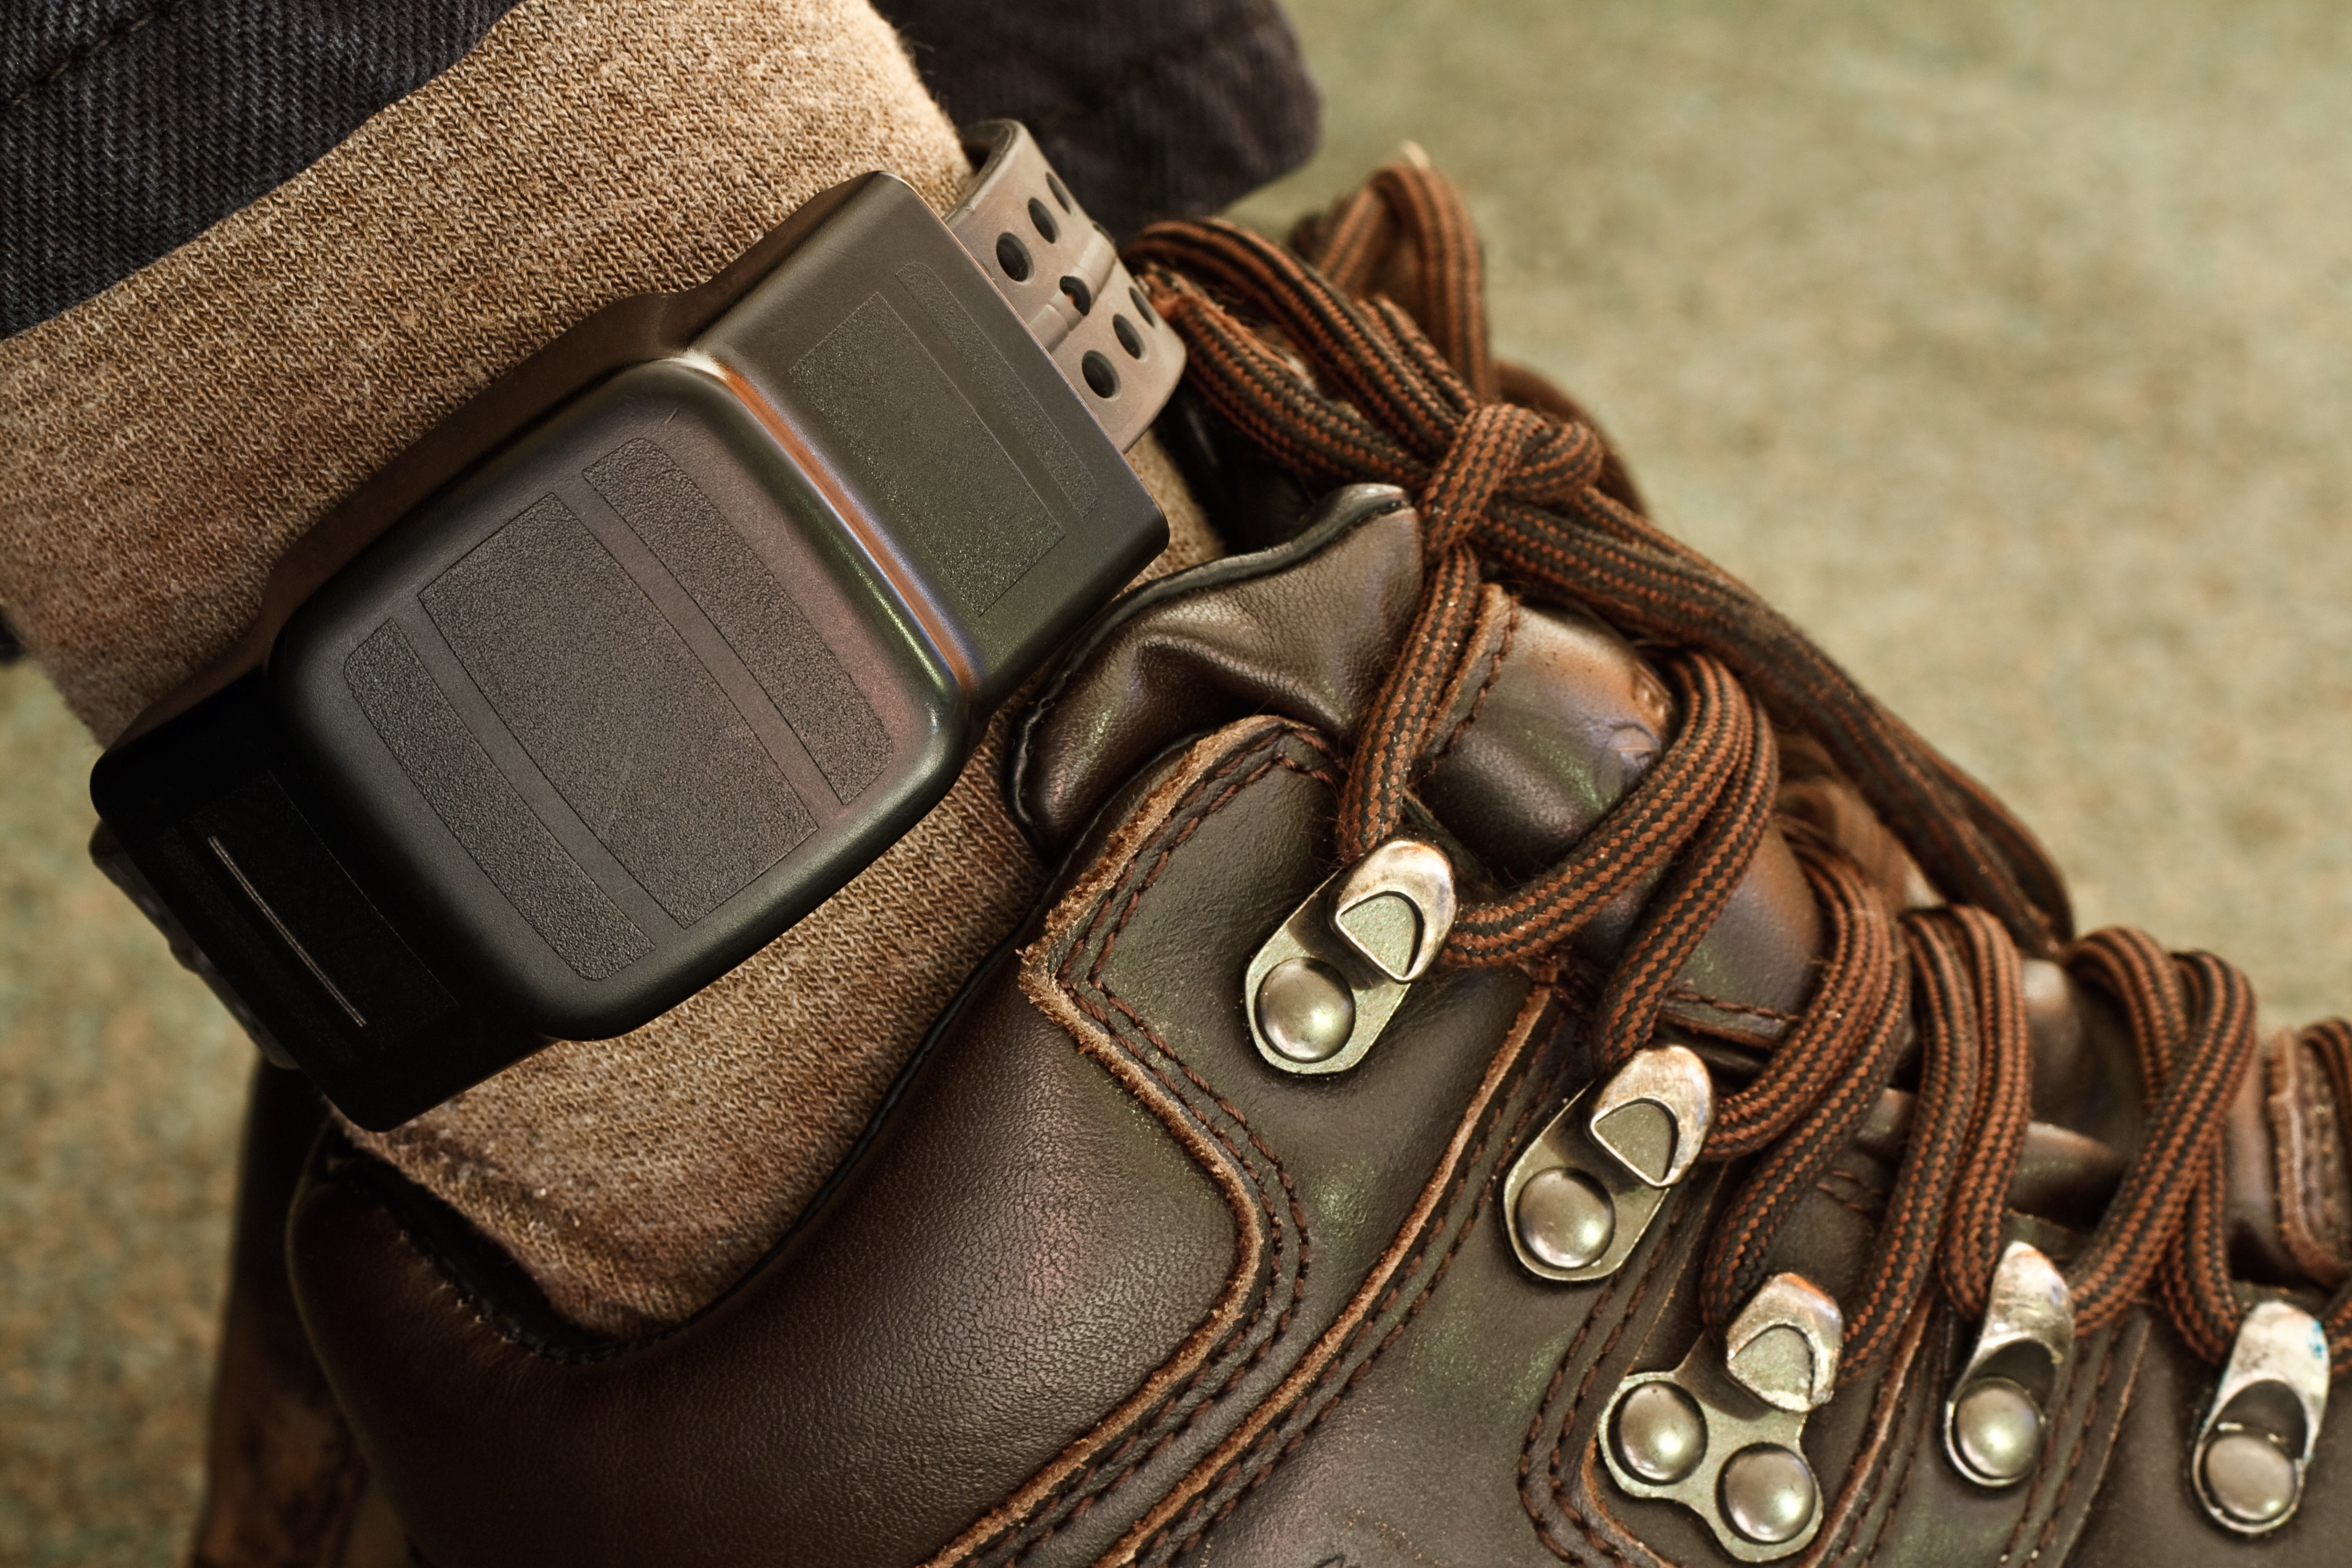 Gps Ankle Monitors Can Record Calls Without Consent And